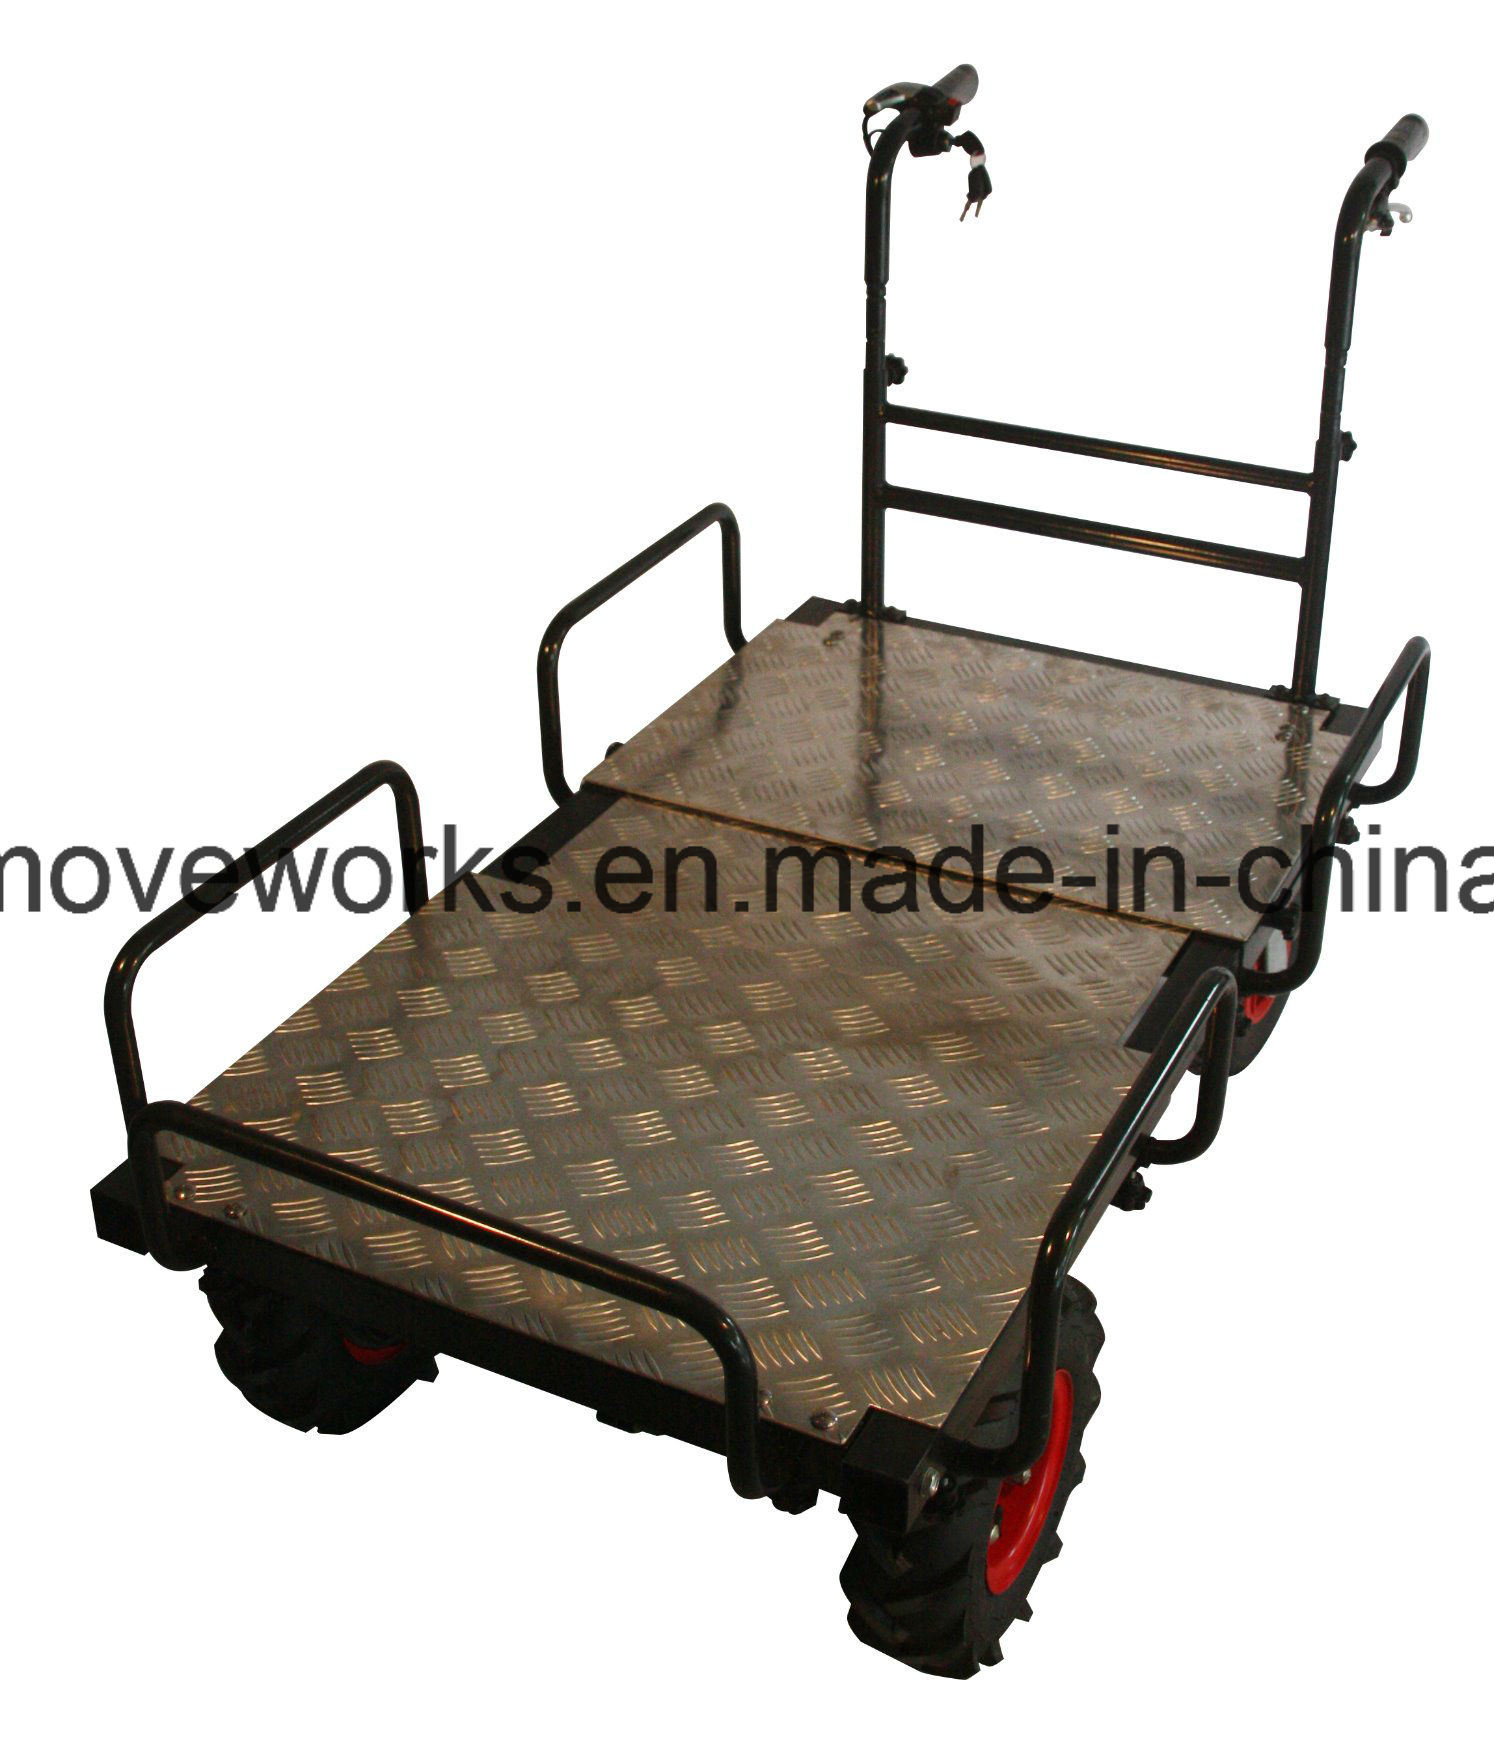 Pallet Platform Electric Drive Cart Electrical Barrow for Gardening Architecture Warehousing Agriculture